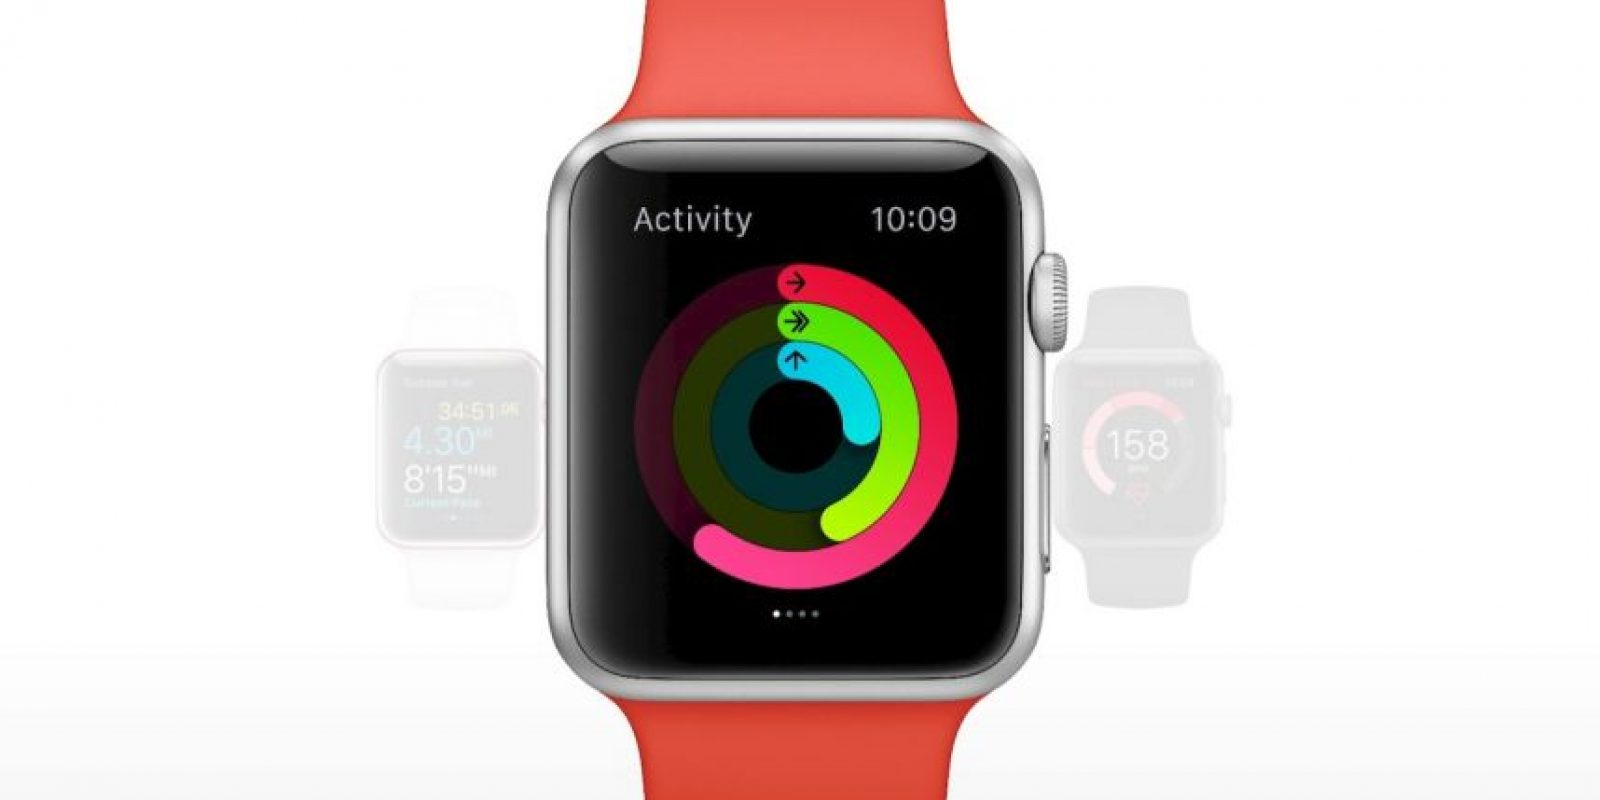 Apple Watch está disponible en tres diferentes colecciones desde 349 dólares. Foto: Apple